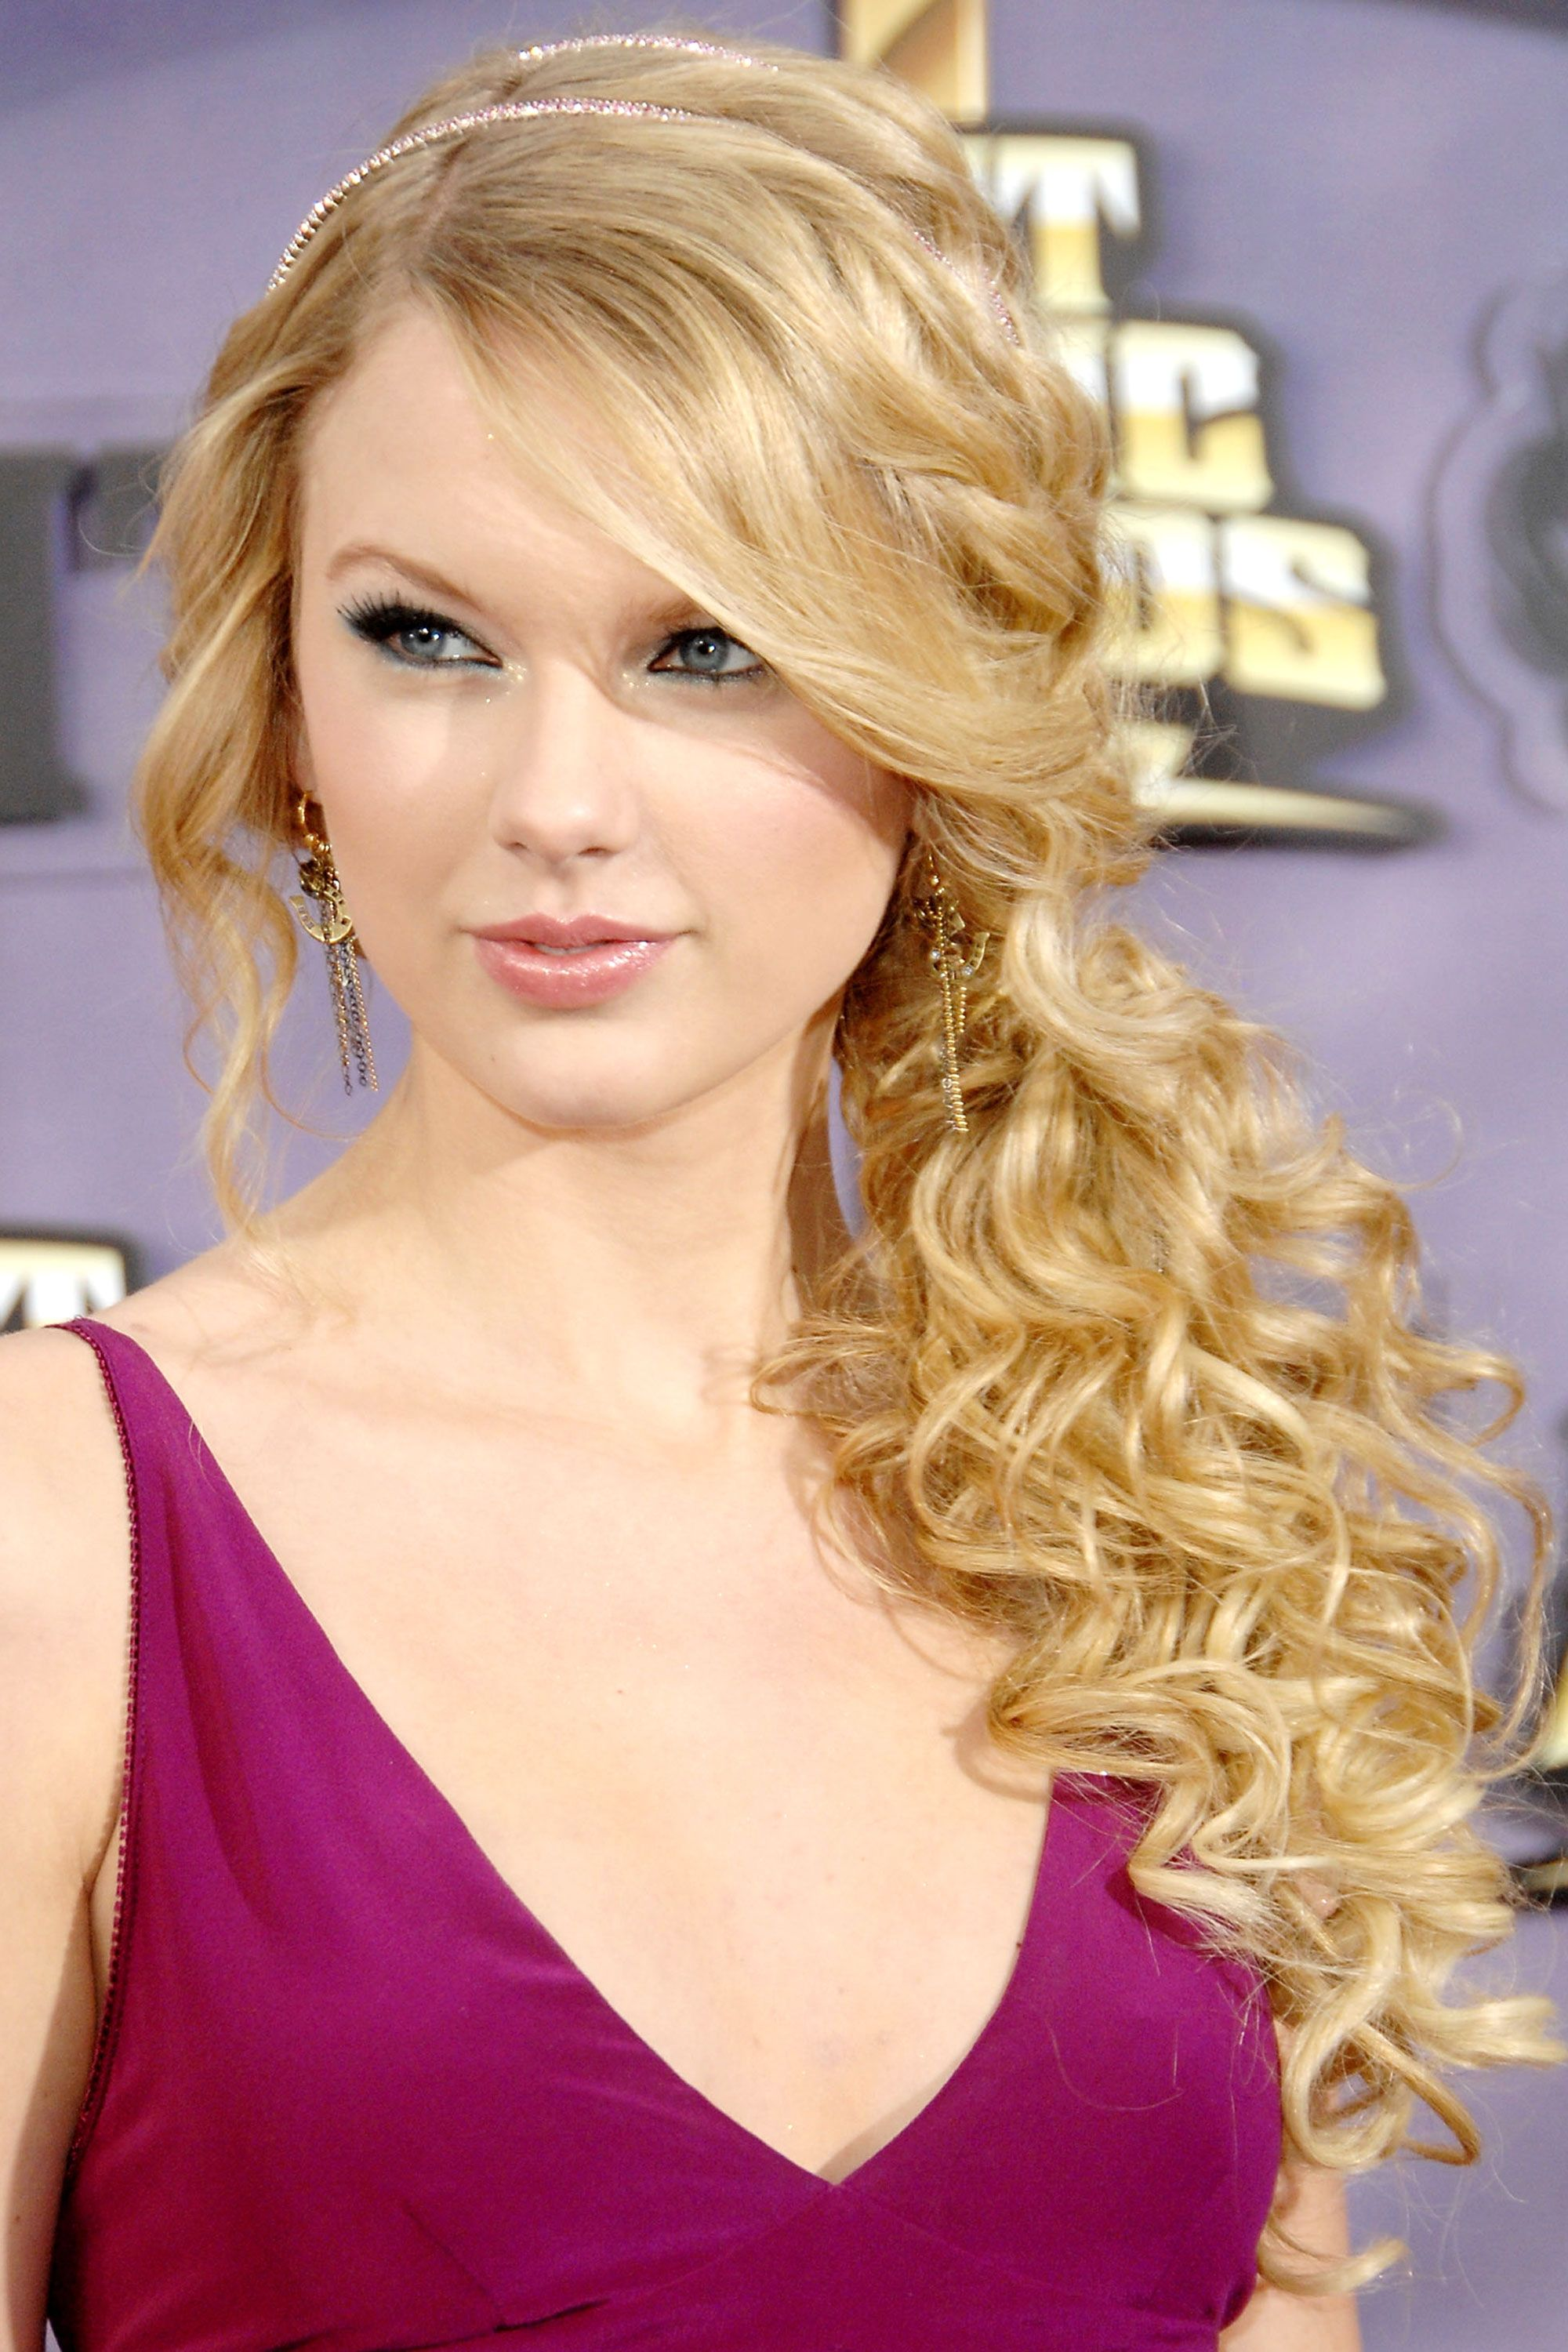 Taylor Swift Updo Hairstyles: Long Hair for Prom